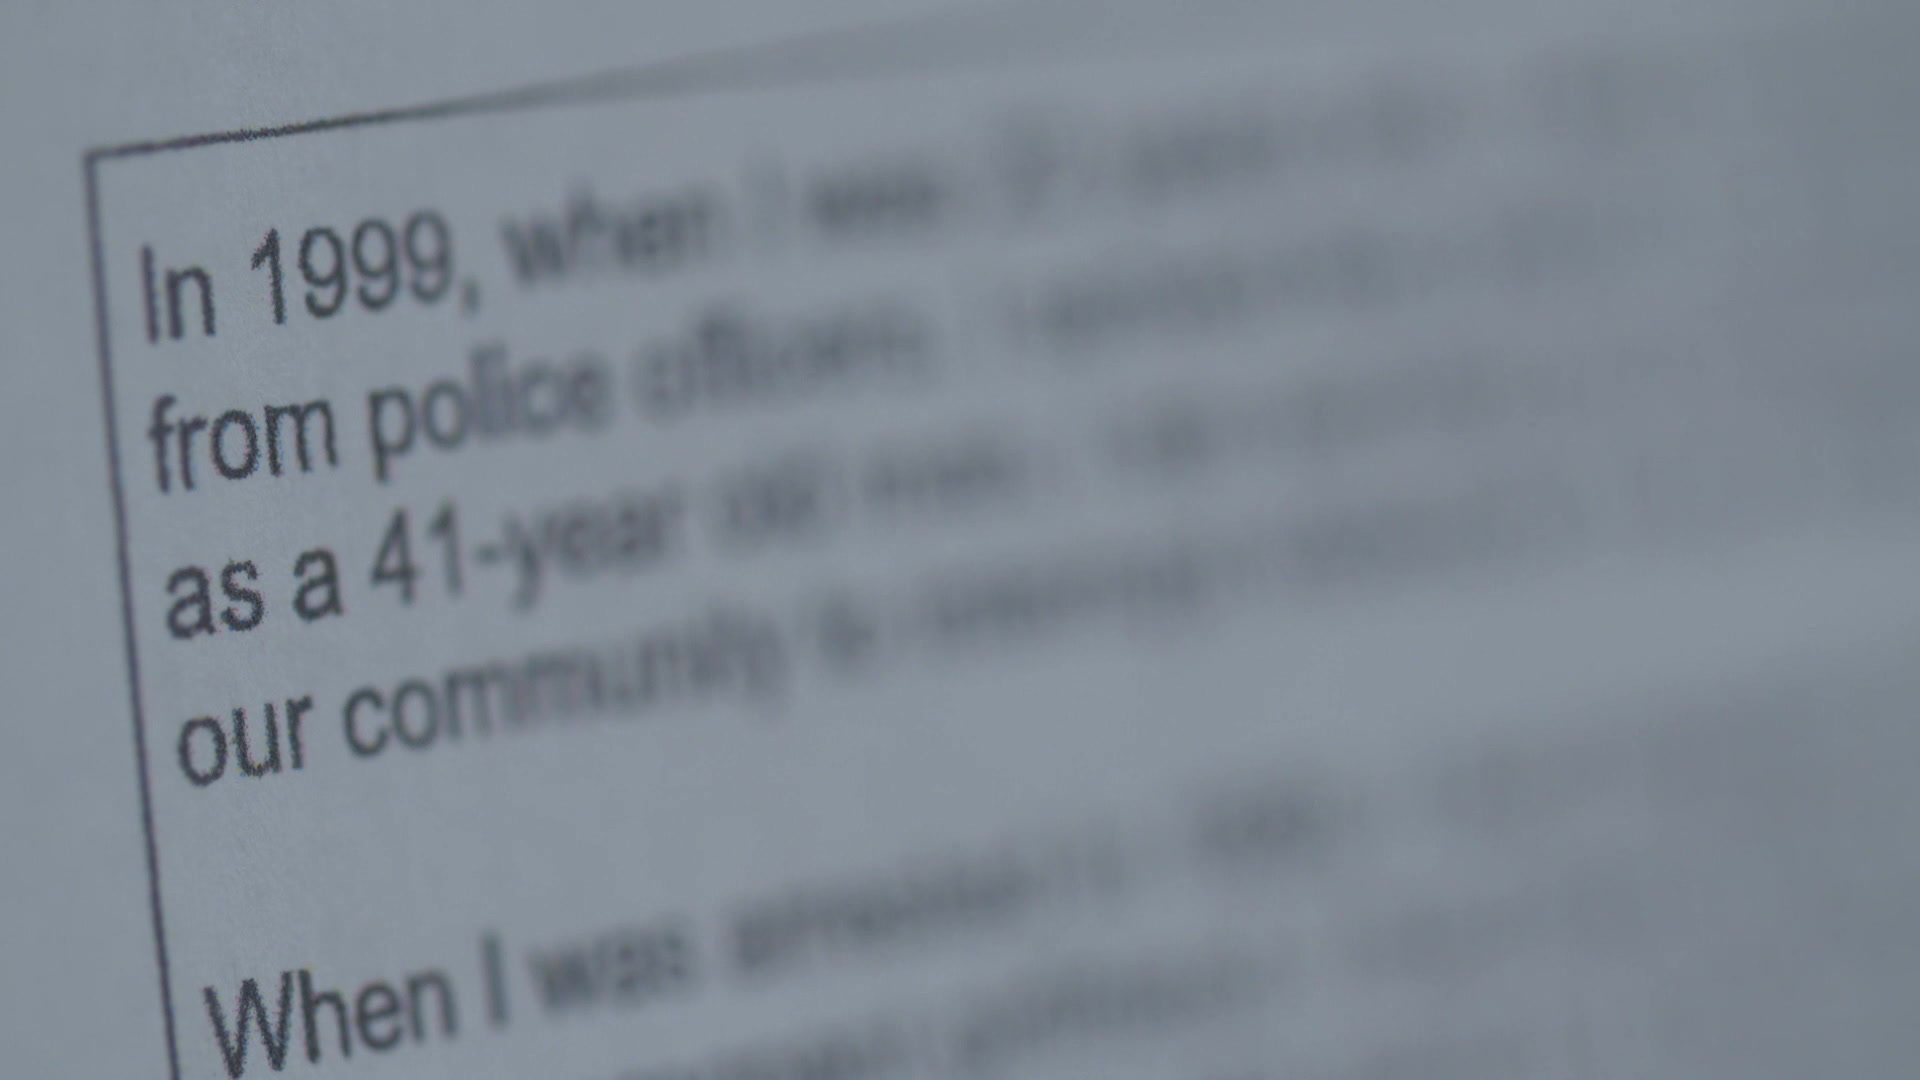 A pardon application letter with most words blurred out